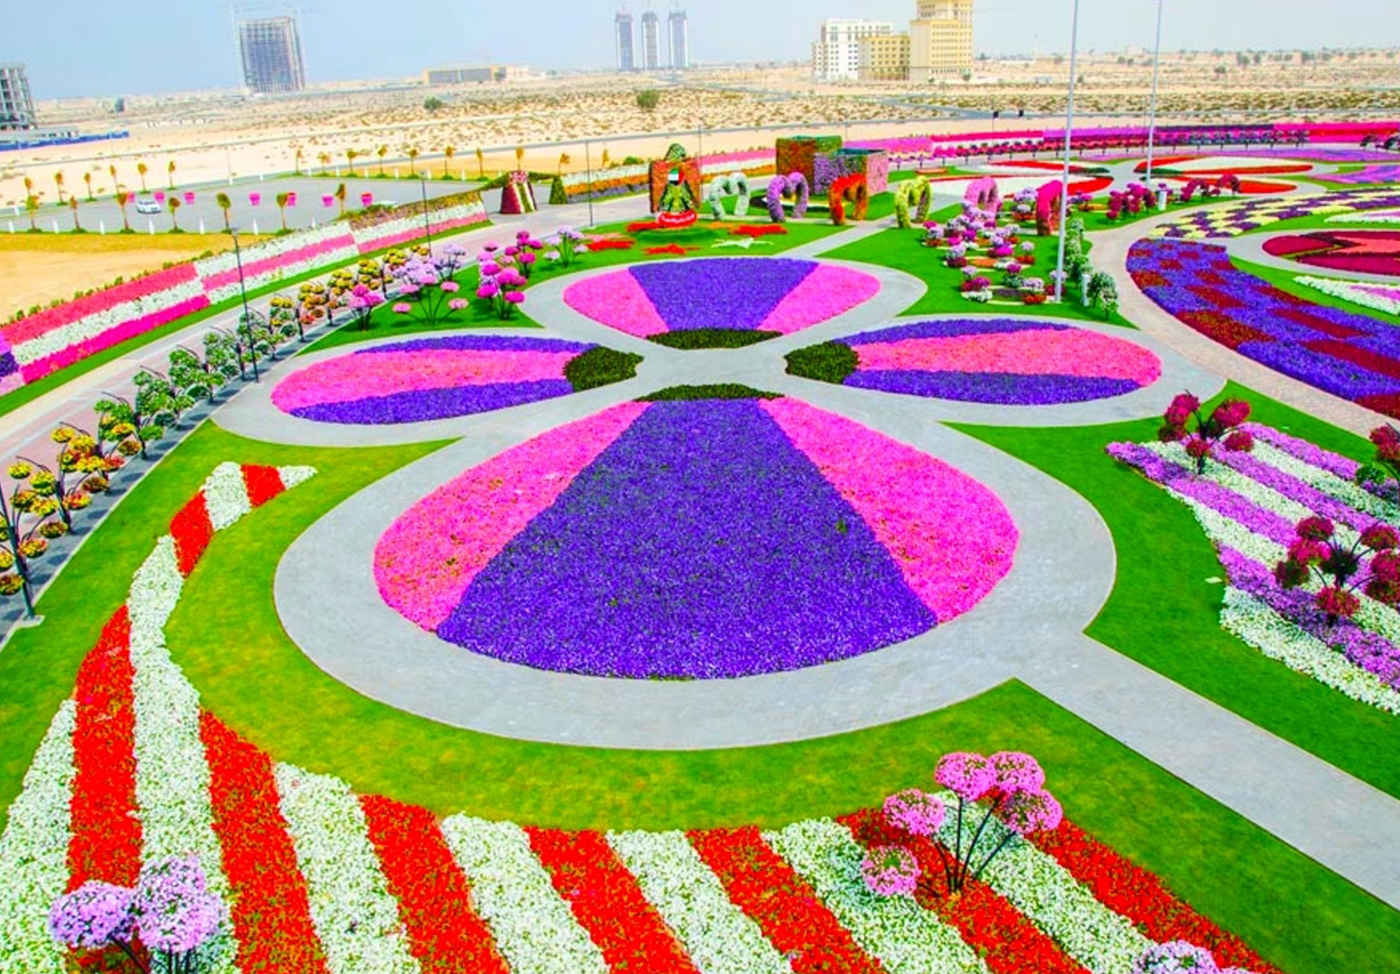 Mybestplace Miracle Garden A Flower Garden In The Heart Of The